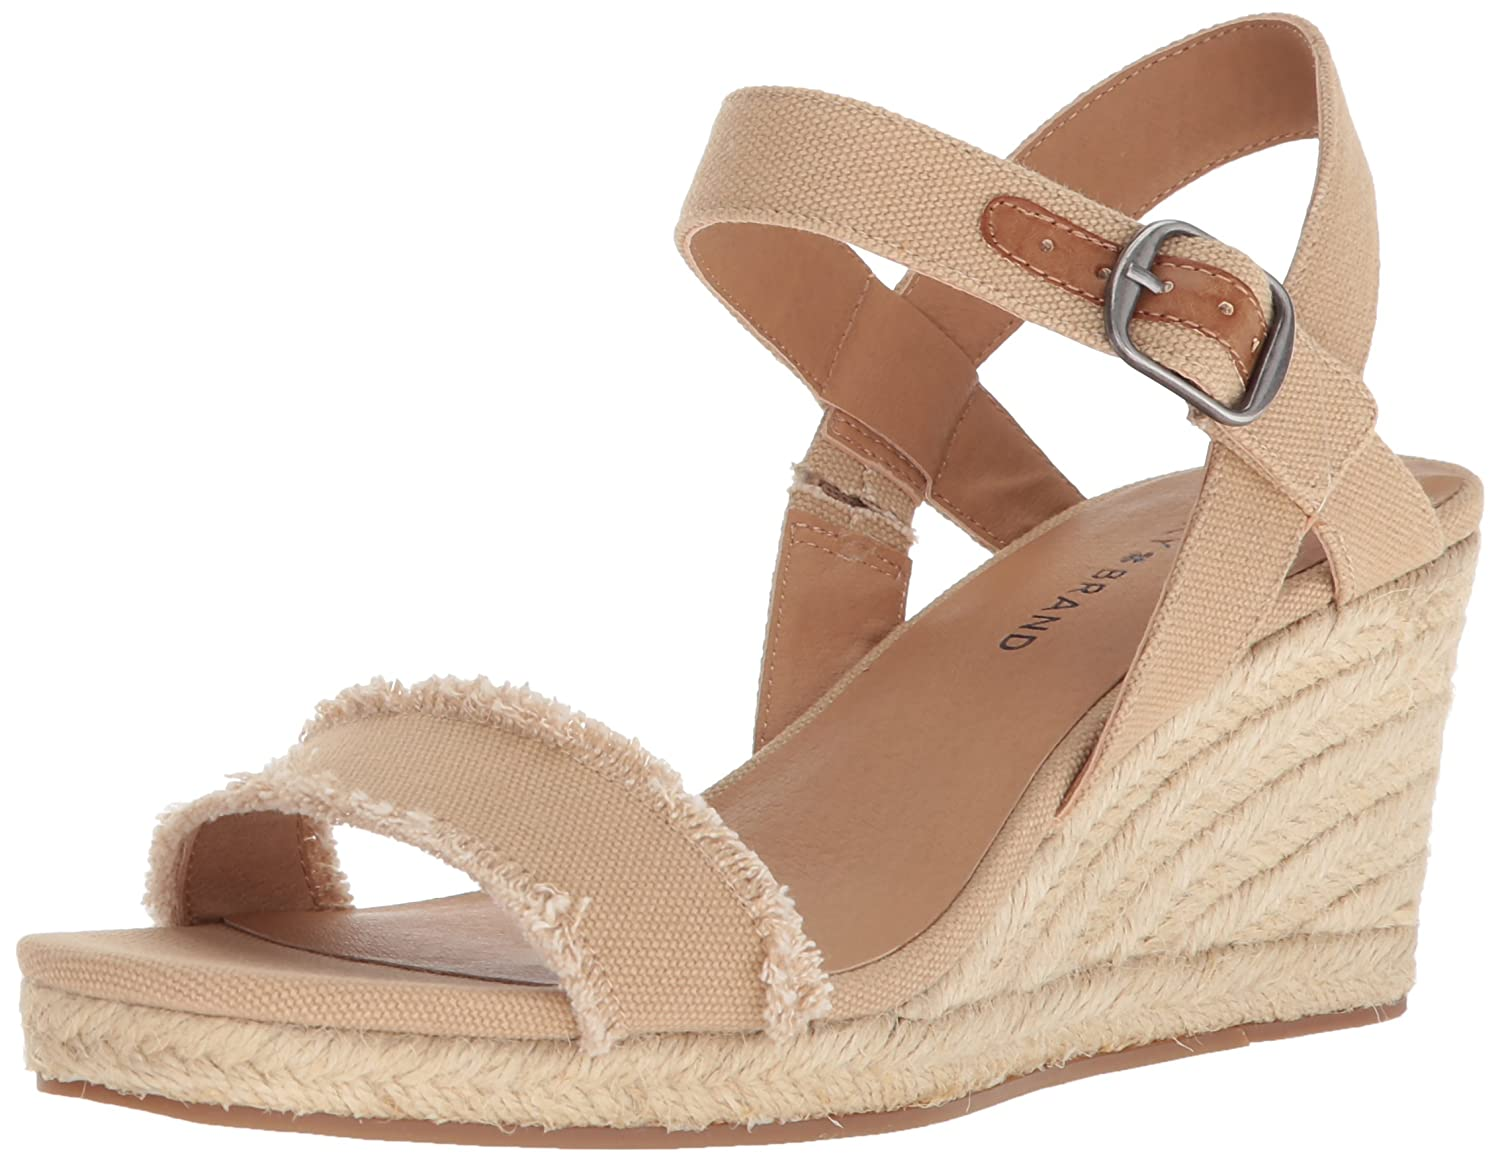 795cf6aef Amazon.com | Lucky Brand Women's Marceline Espadrille Wedge Sandal |  Platforms & Wedges